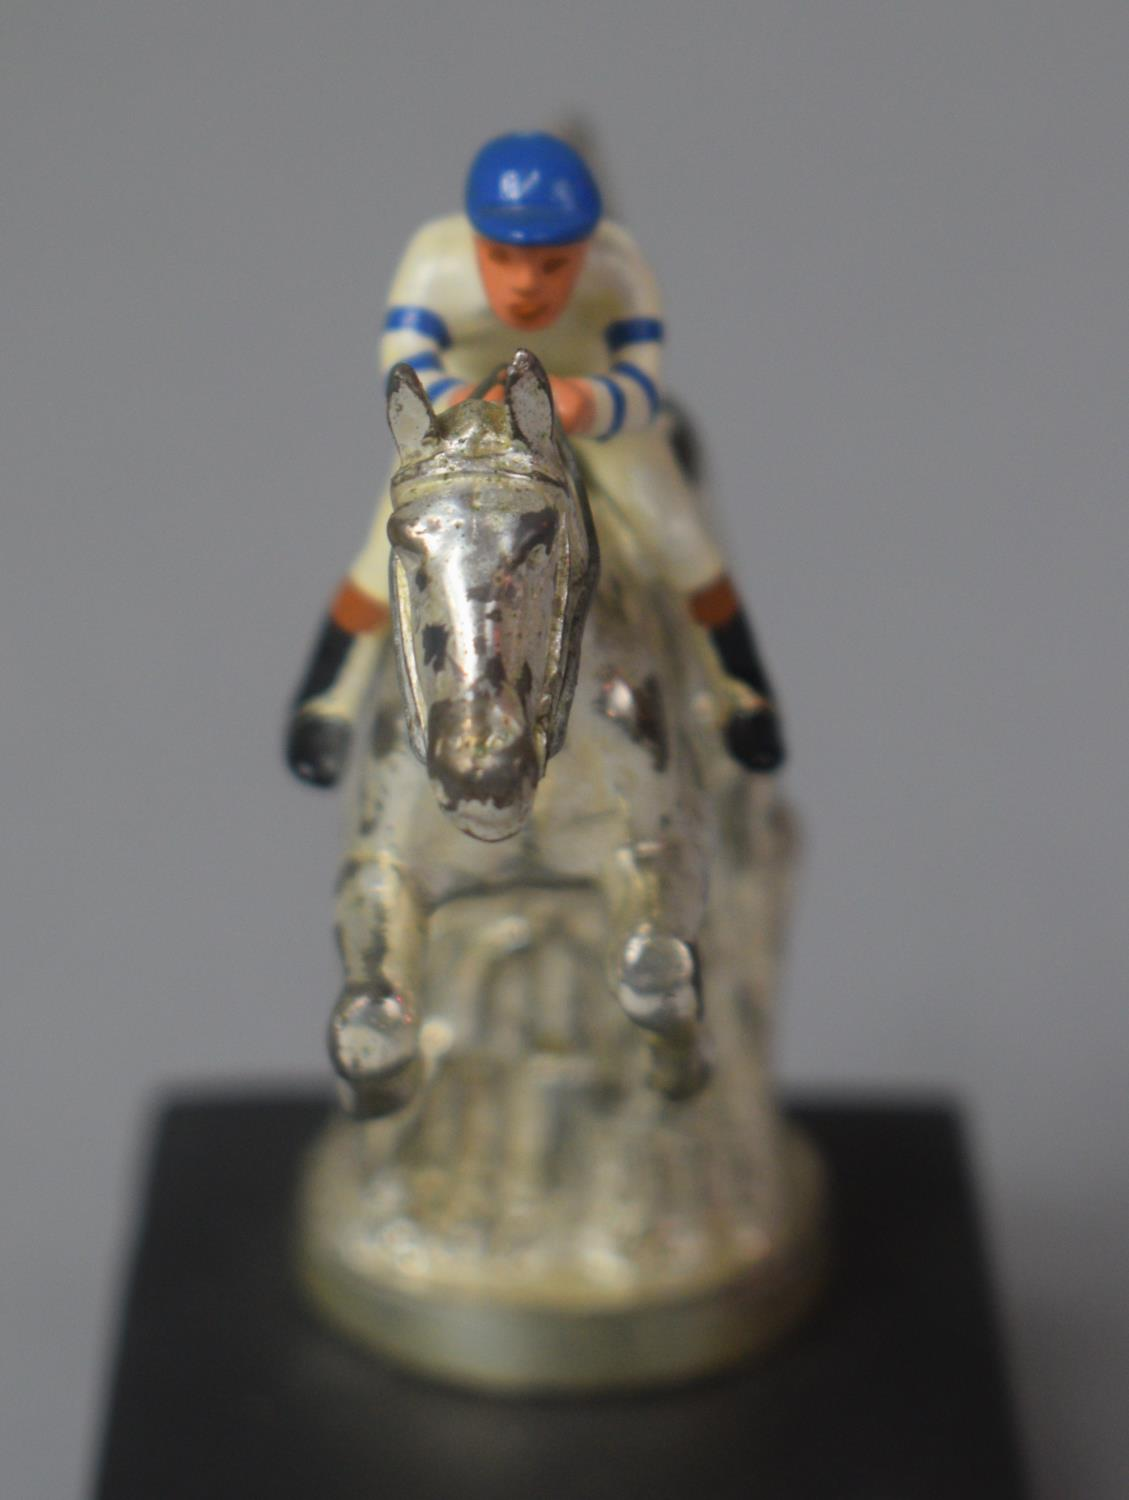 A Chromed Car Mascot in the Form of Racehorse and Jockey Taking Fence, 12.5cm high - Image 3 of 4